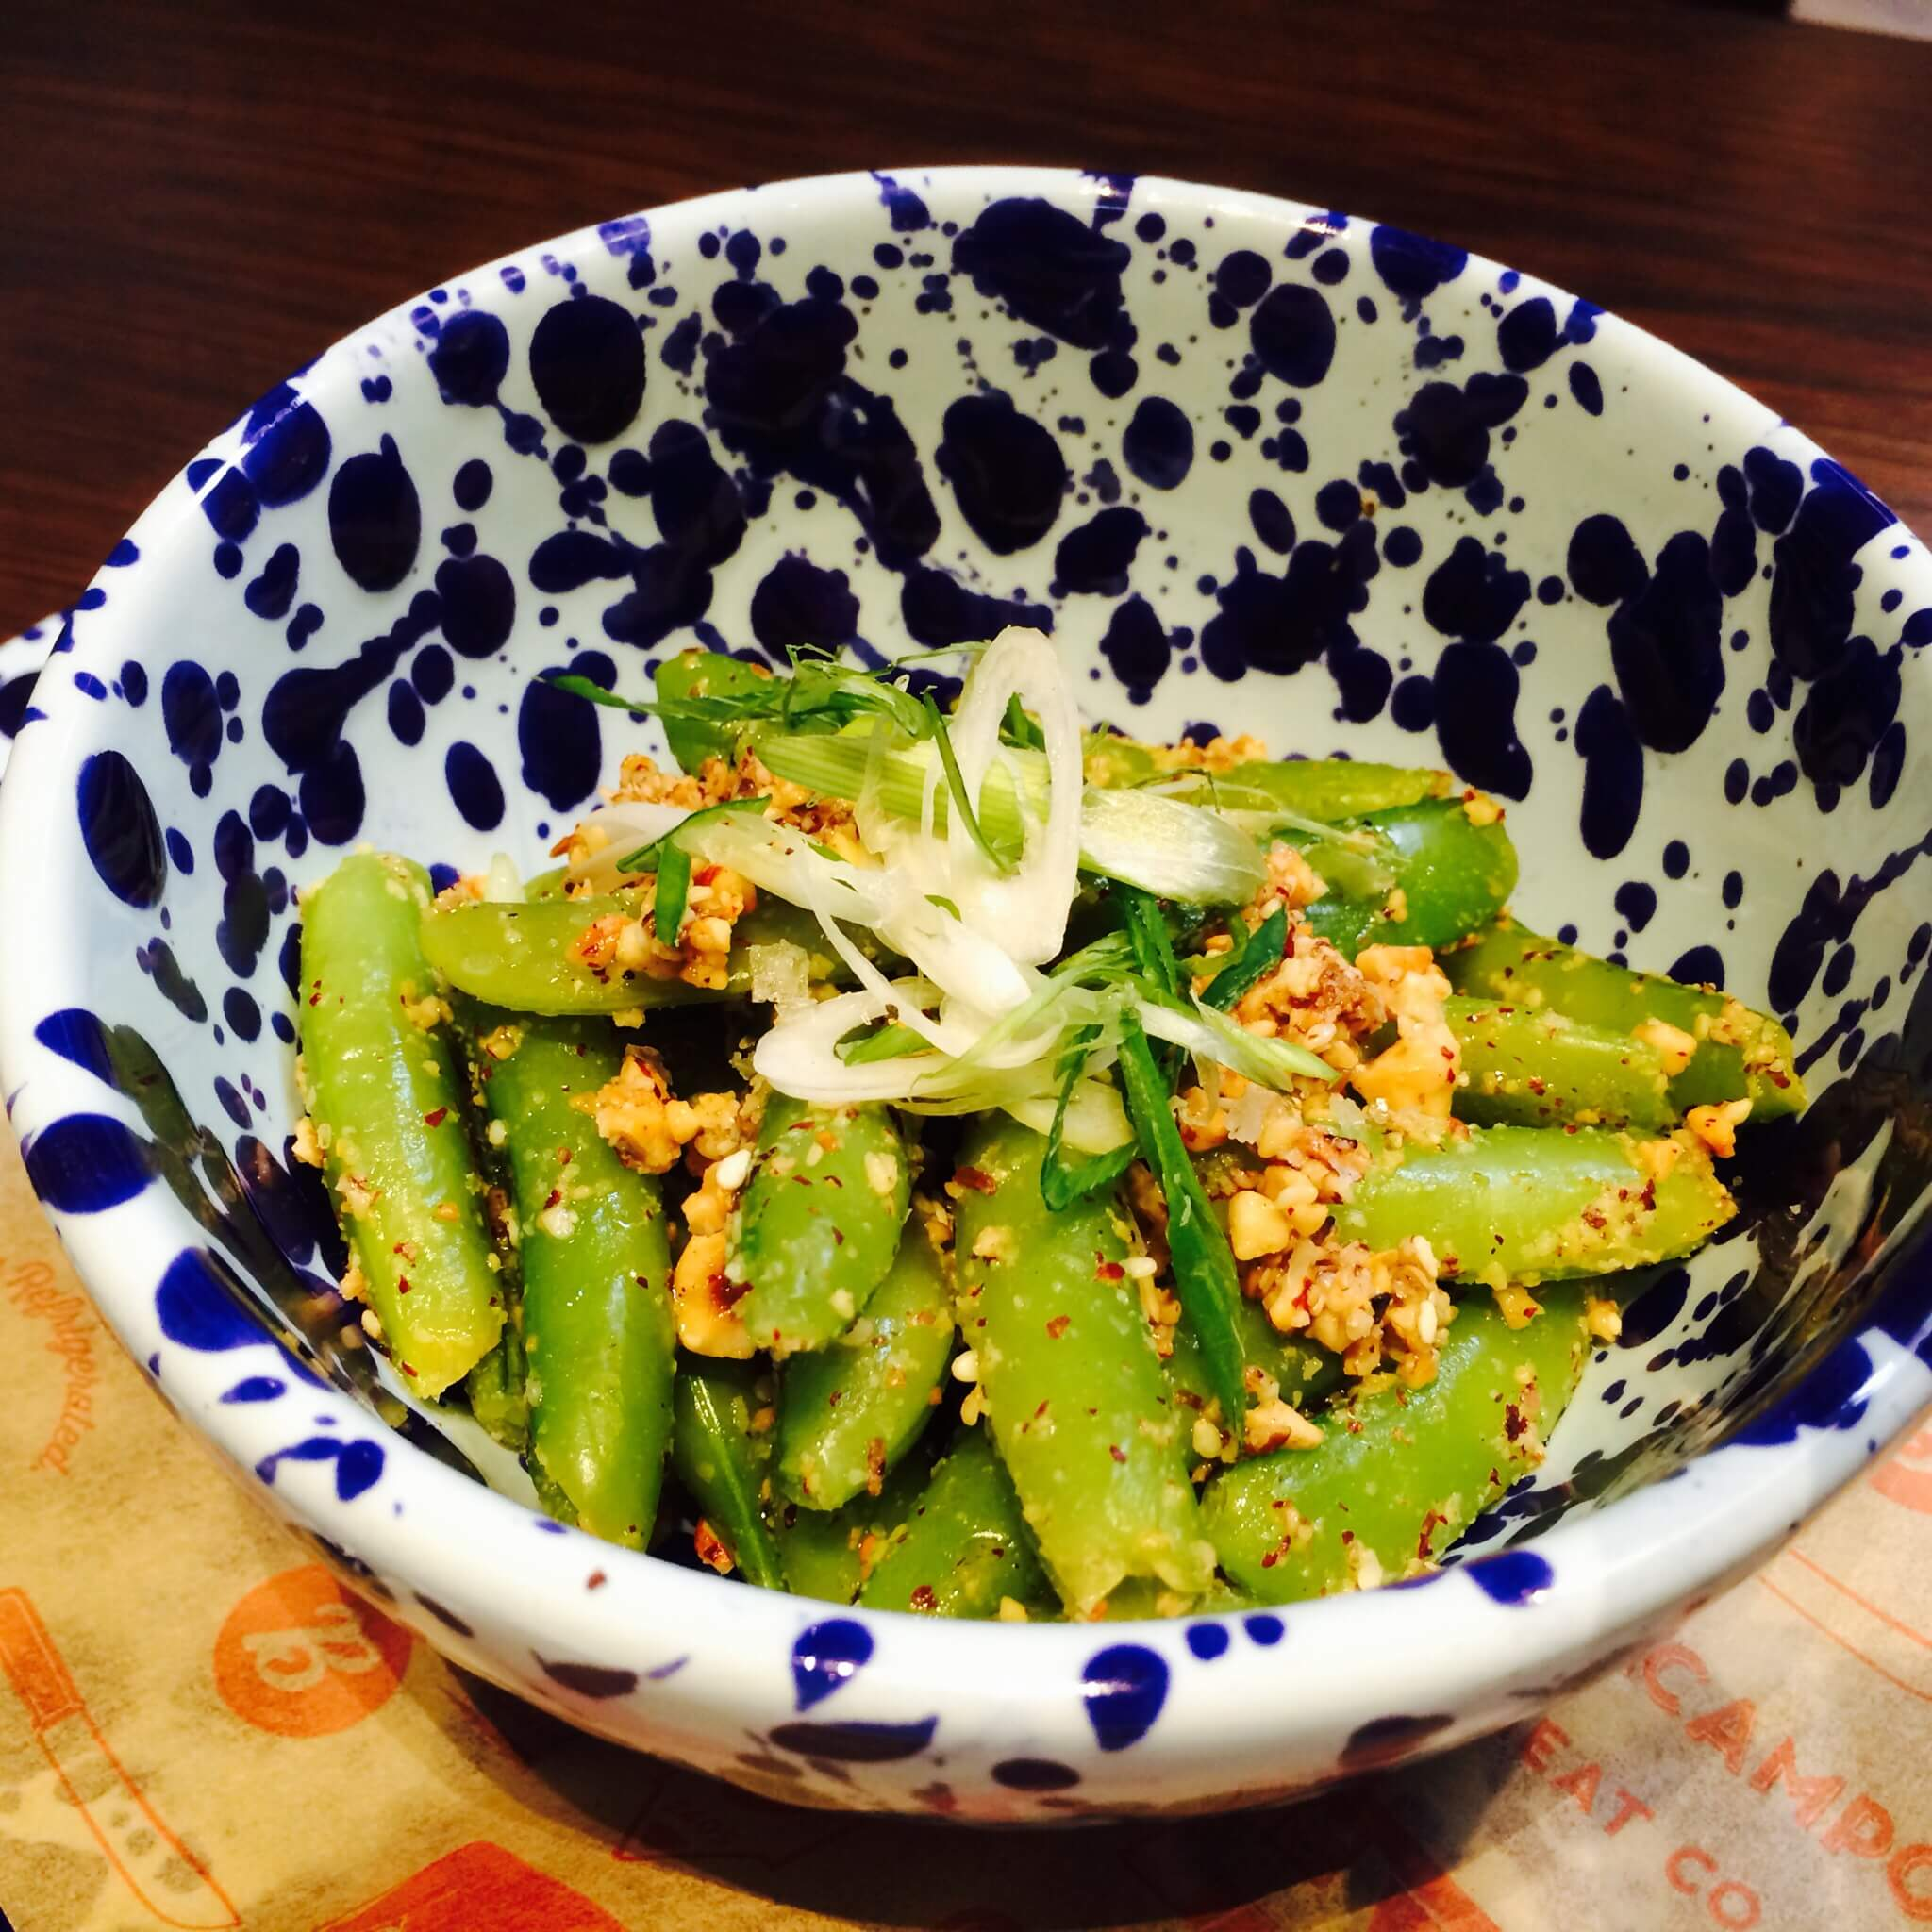 GRILLED SUGAR SNAP PEA-With hazelnut dukkah